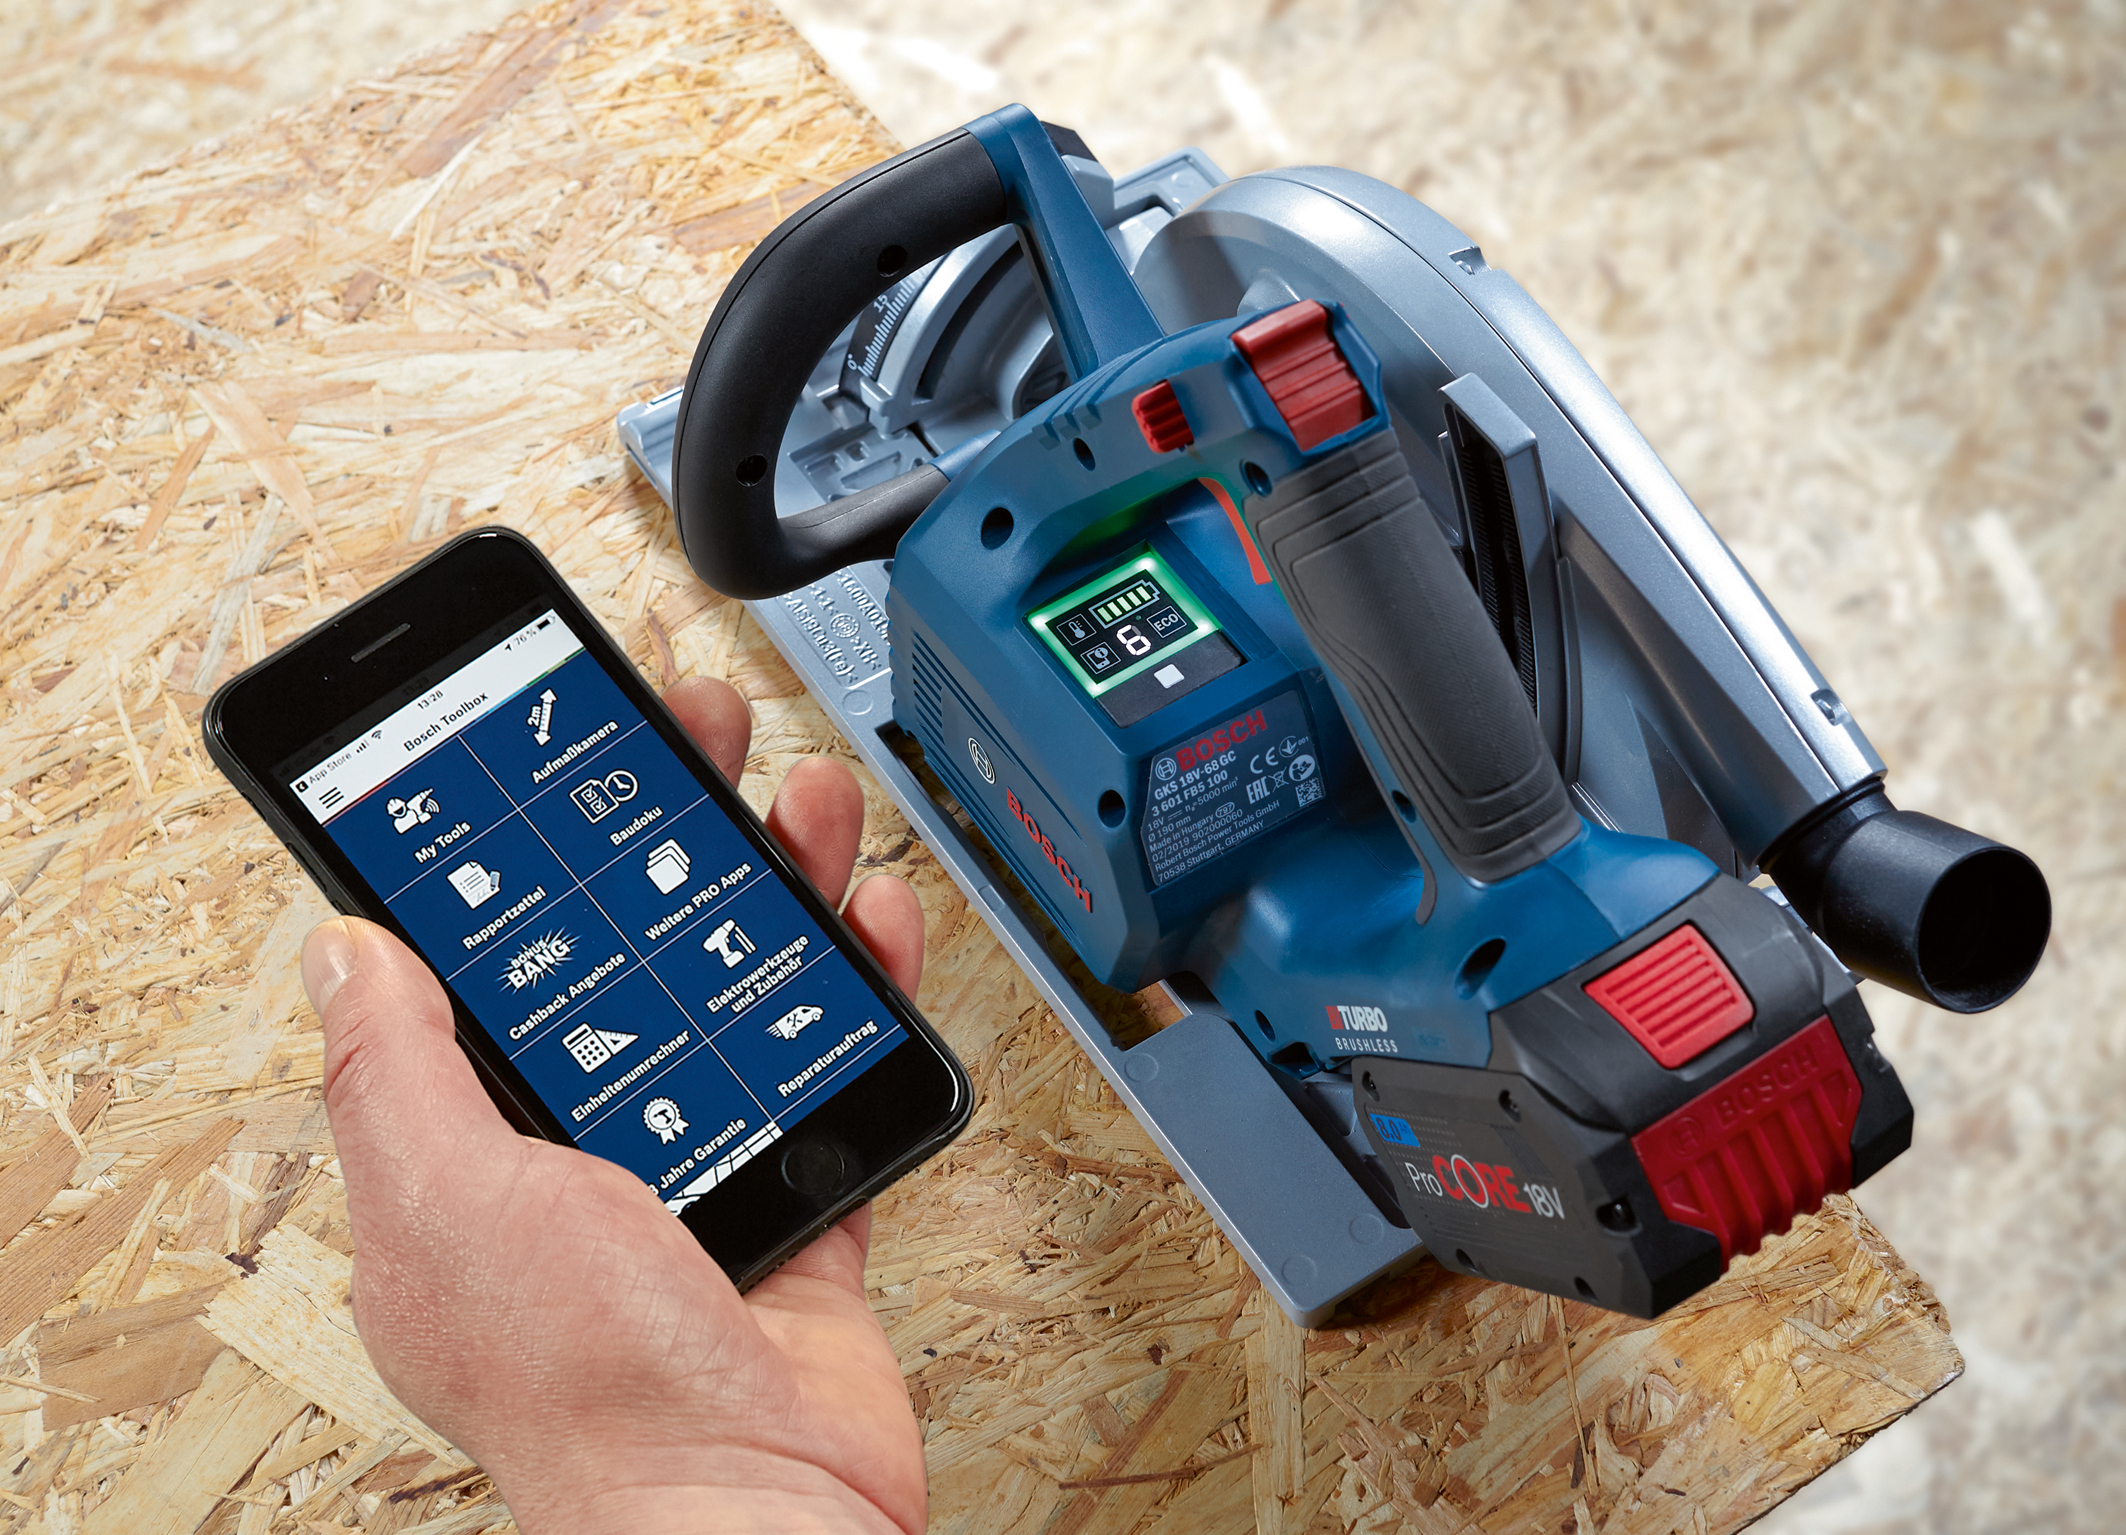 Added value through user interface and connectivity function: Cordless GKS 18V-68 GC Professional hand-held circular saw from Bosch for professionals